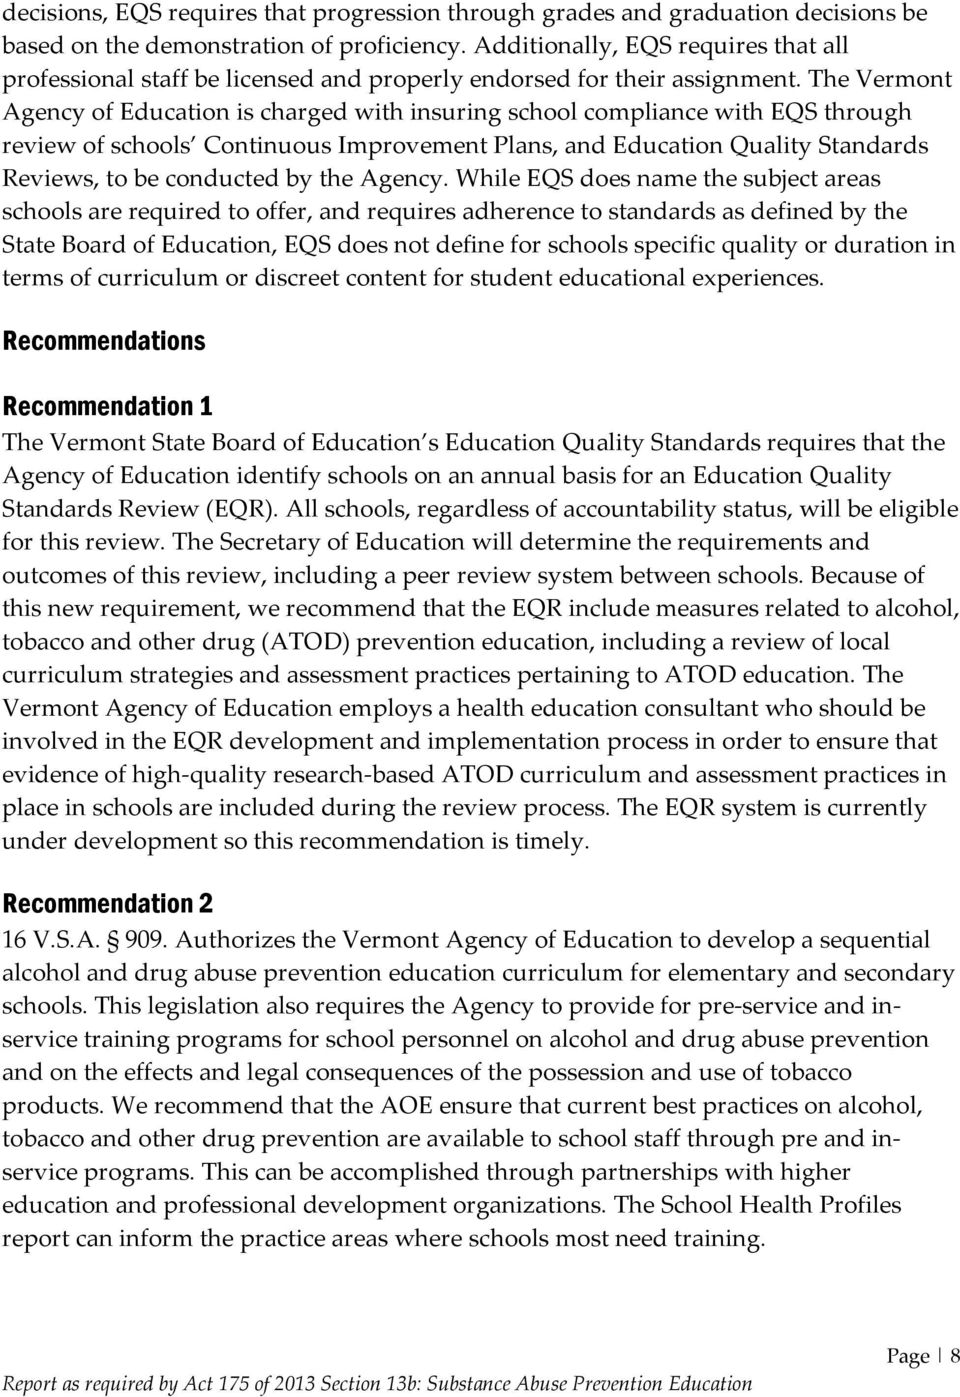 The Vermont Agency of Education is charged with insuring school compliance with EQS through review of schools Continuous Improvement Plans, and Education Quality Standards Reviews, to be conducted by